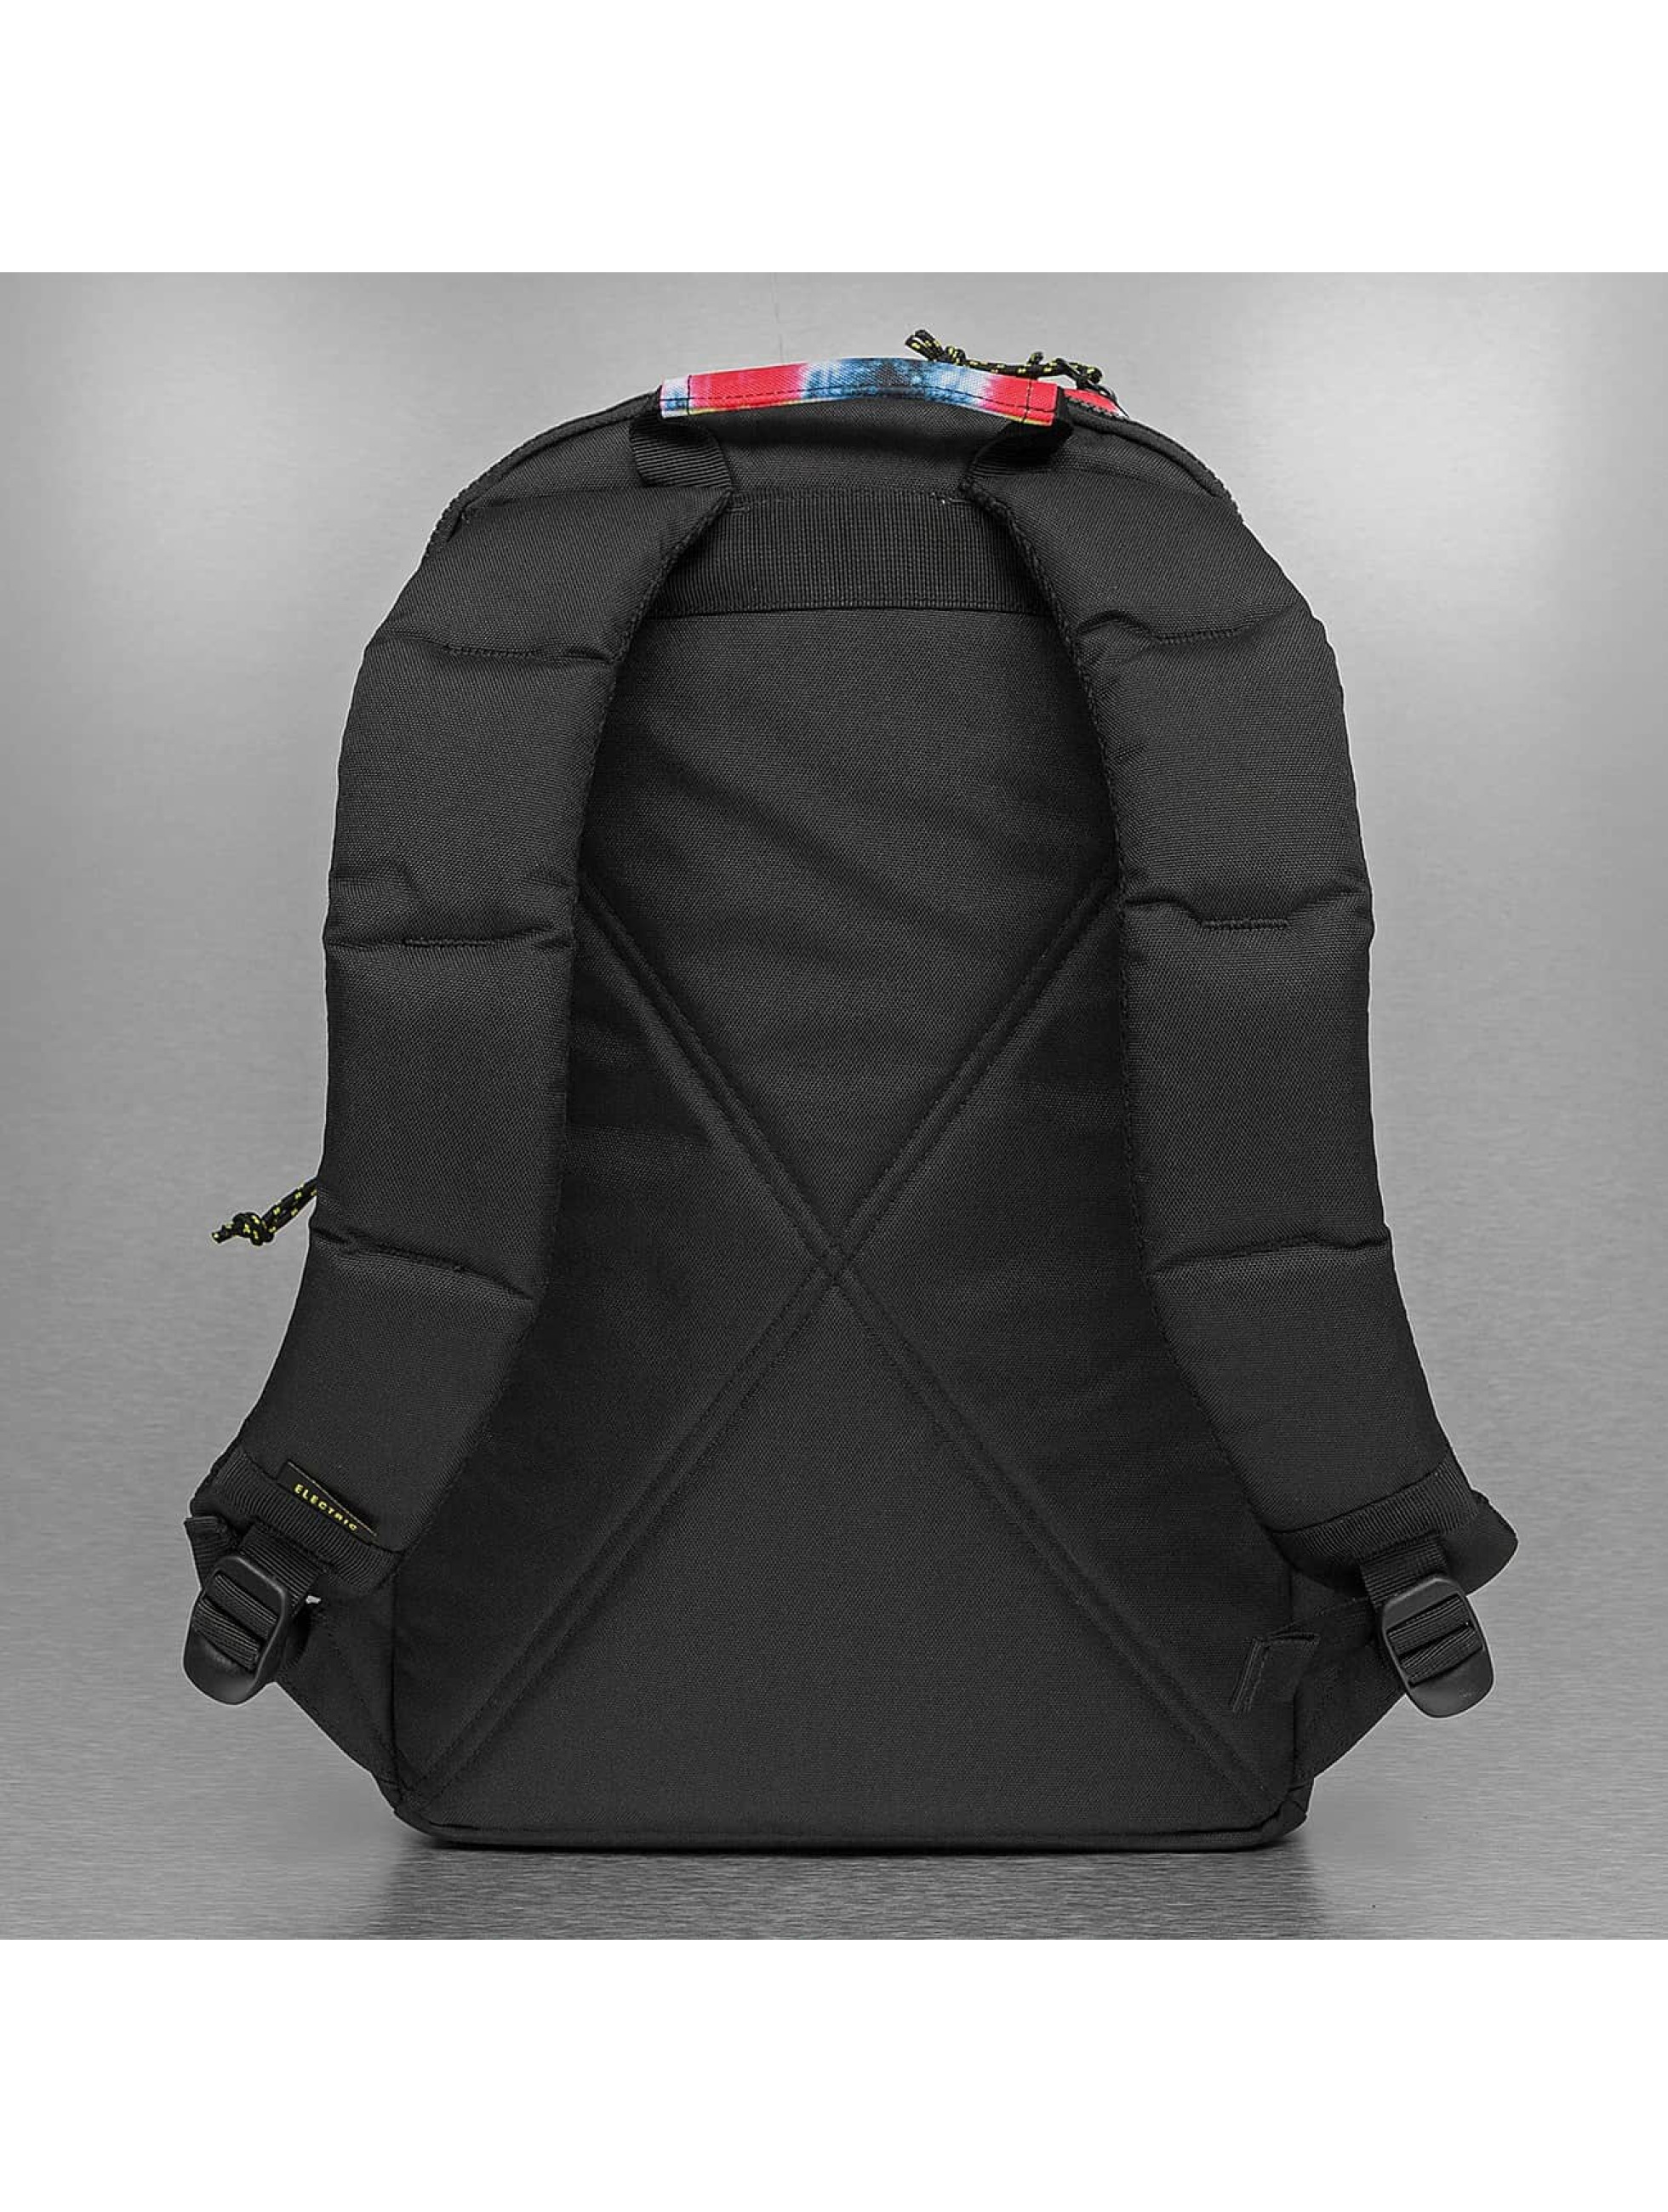 Electric Backpack FLINT colored